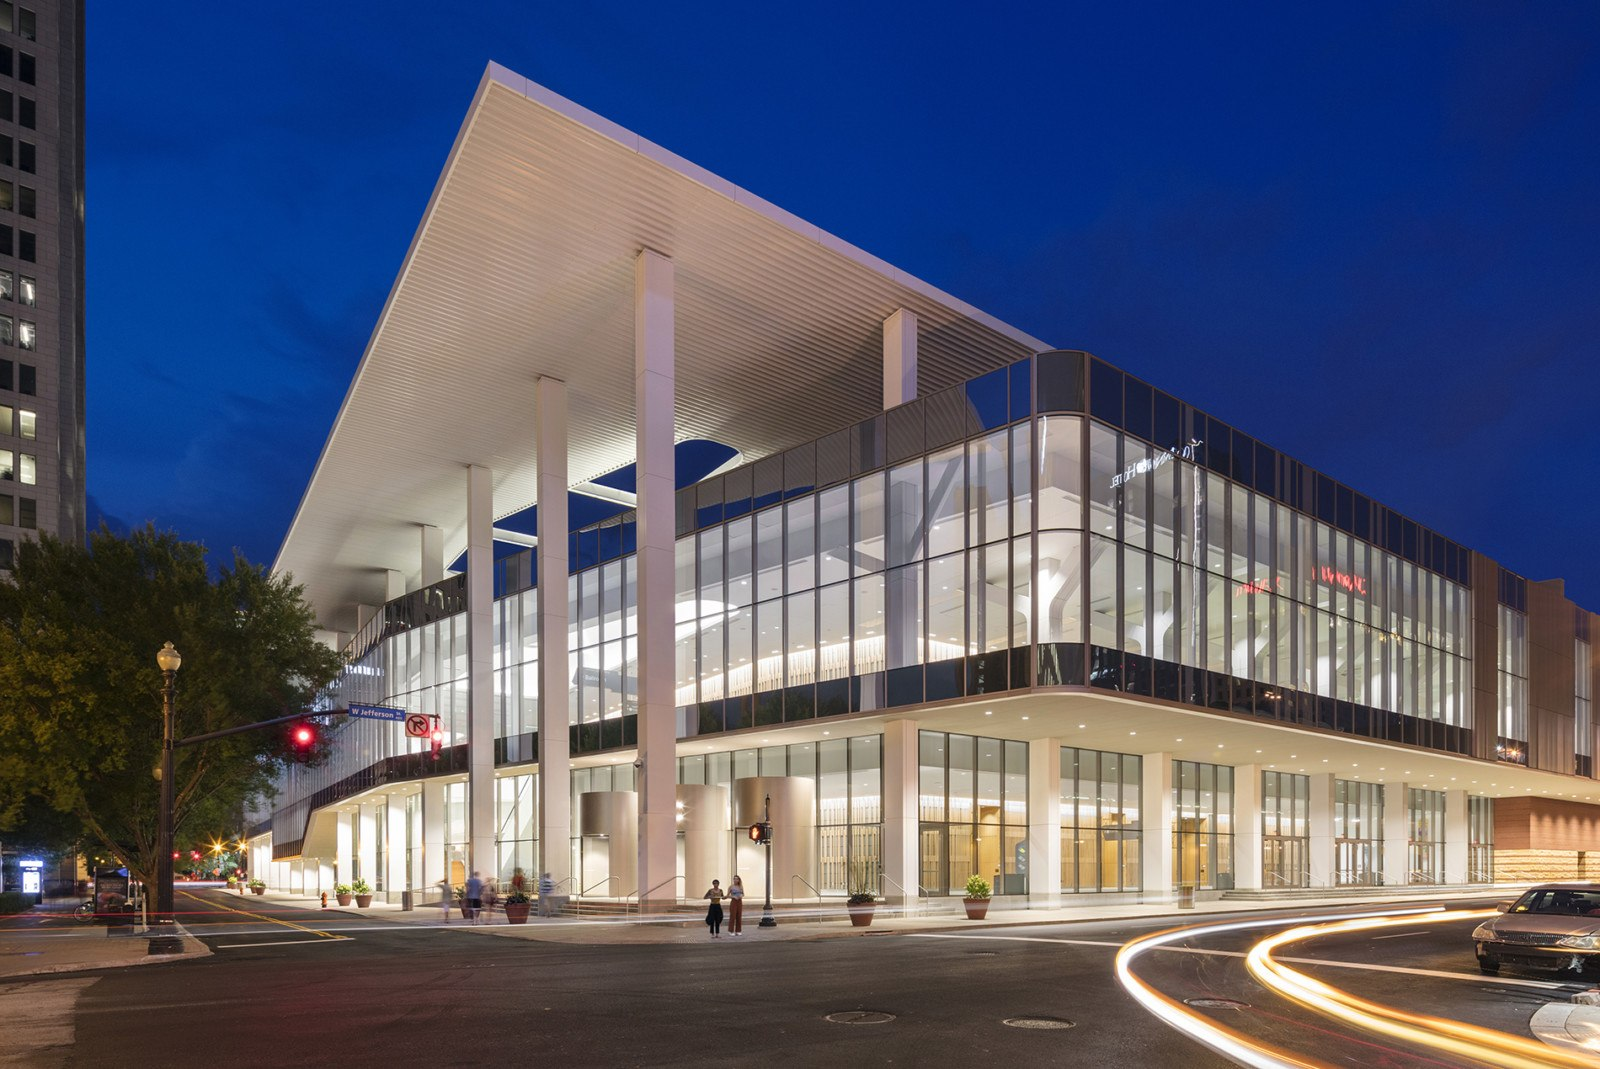 This is the front of the Kentucky International Convention Center in Louisville, where the 47th Annual Course will be held.